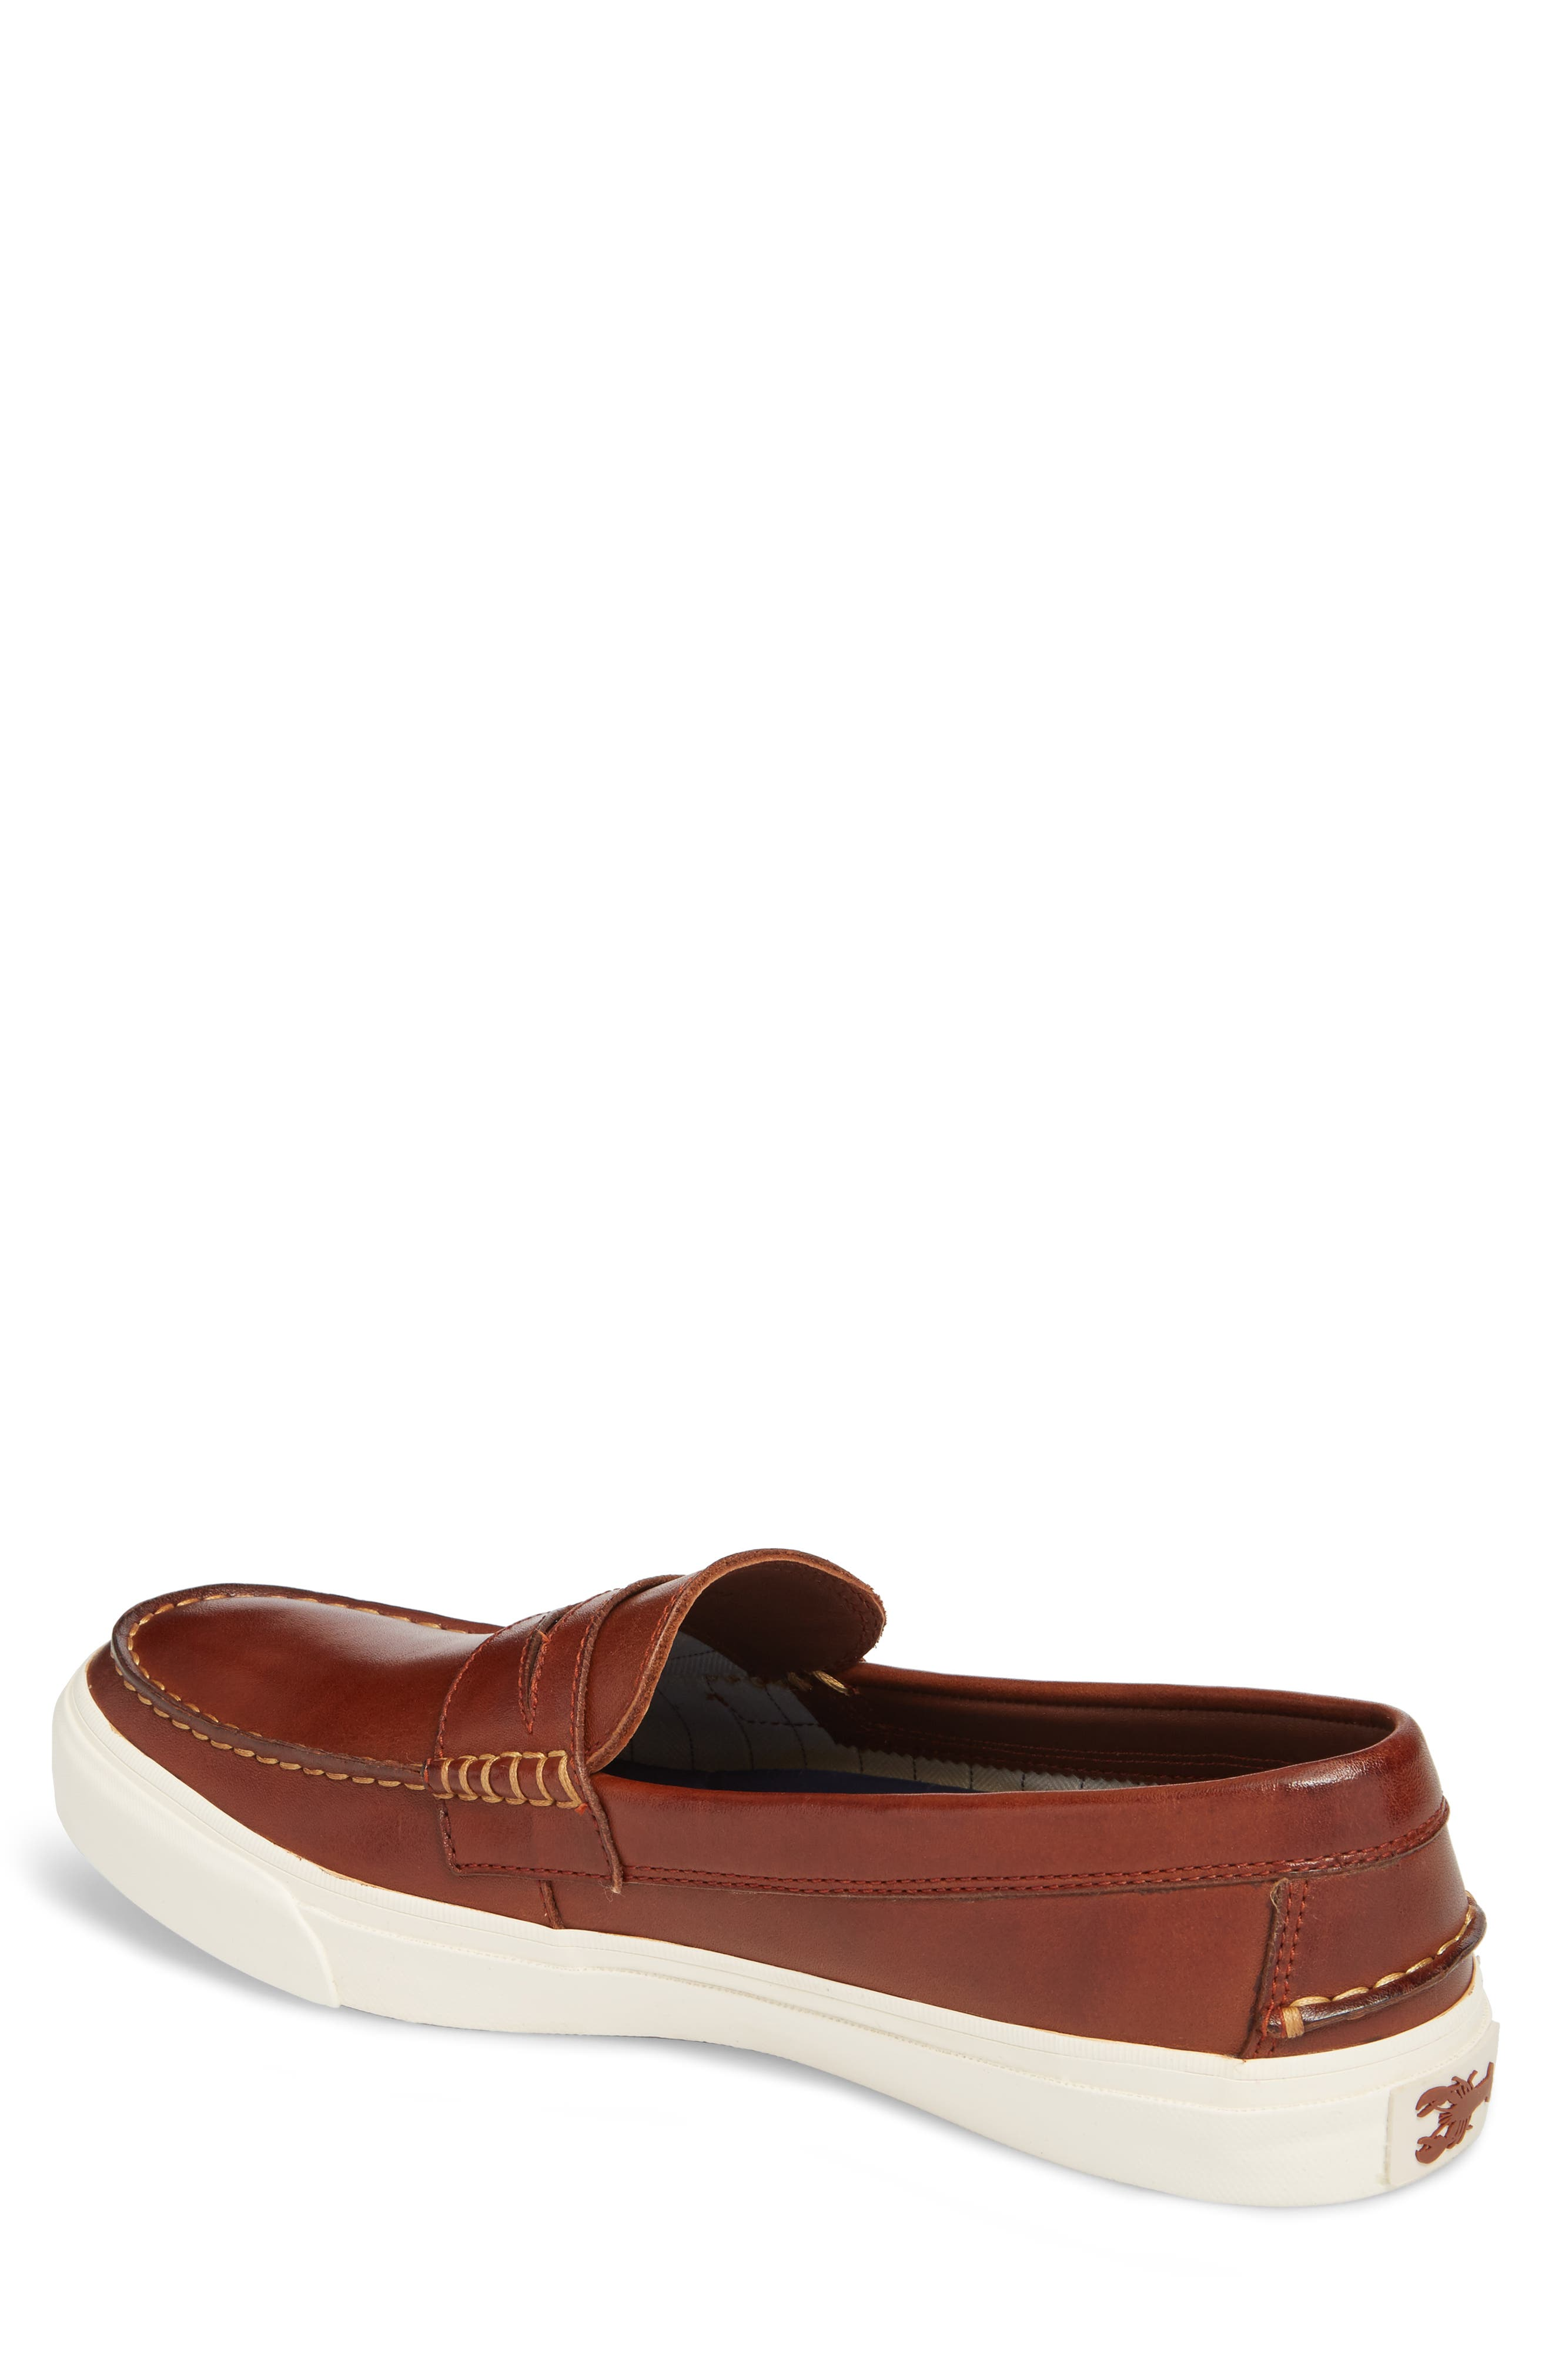 Pinch Weekend LX Penny Loafer,                             Alternate thumbnail 14, color,